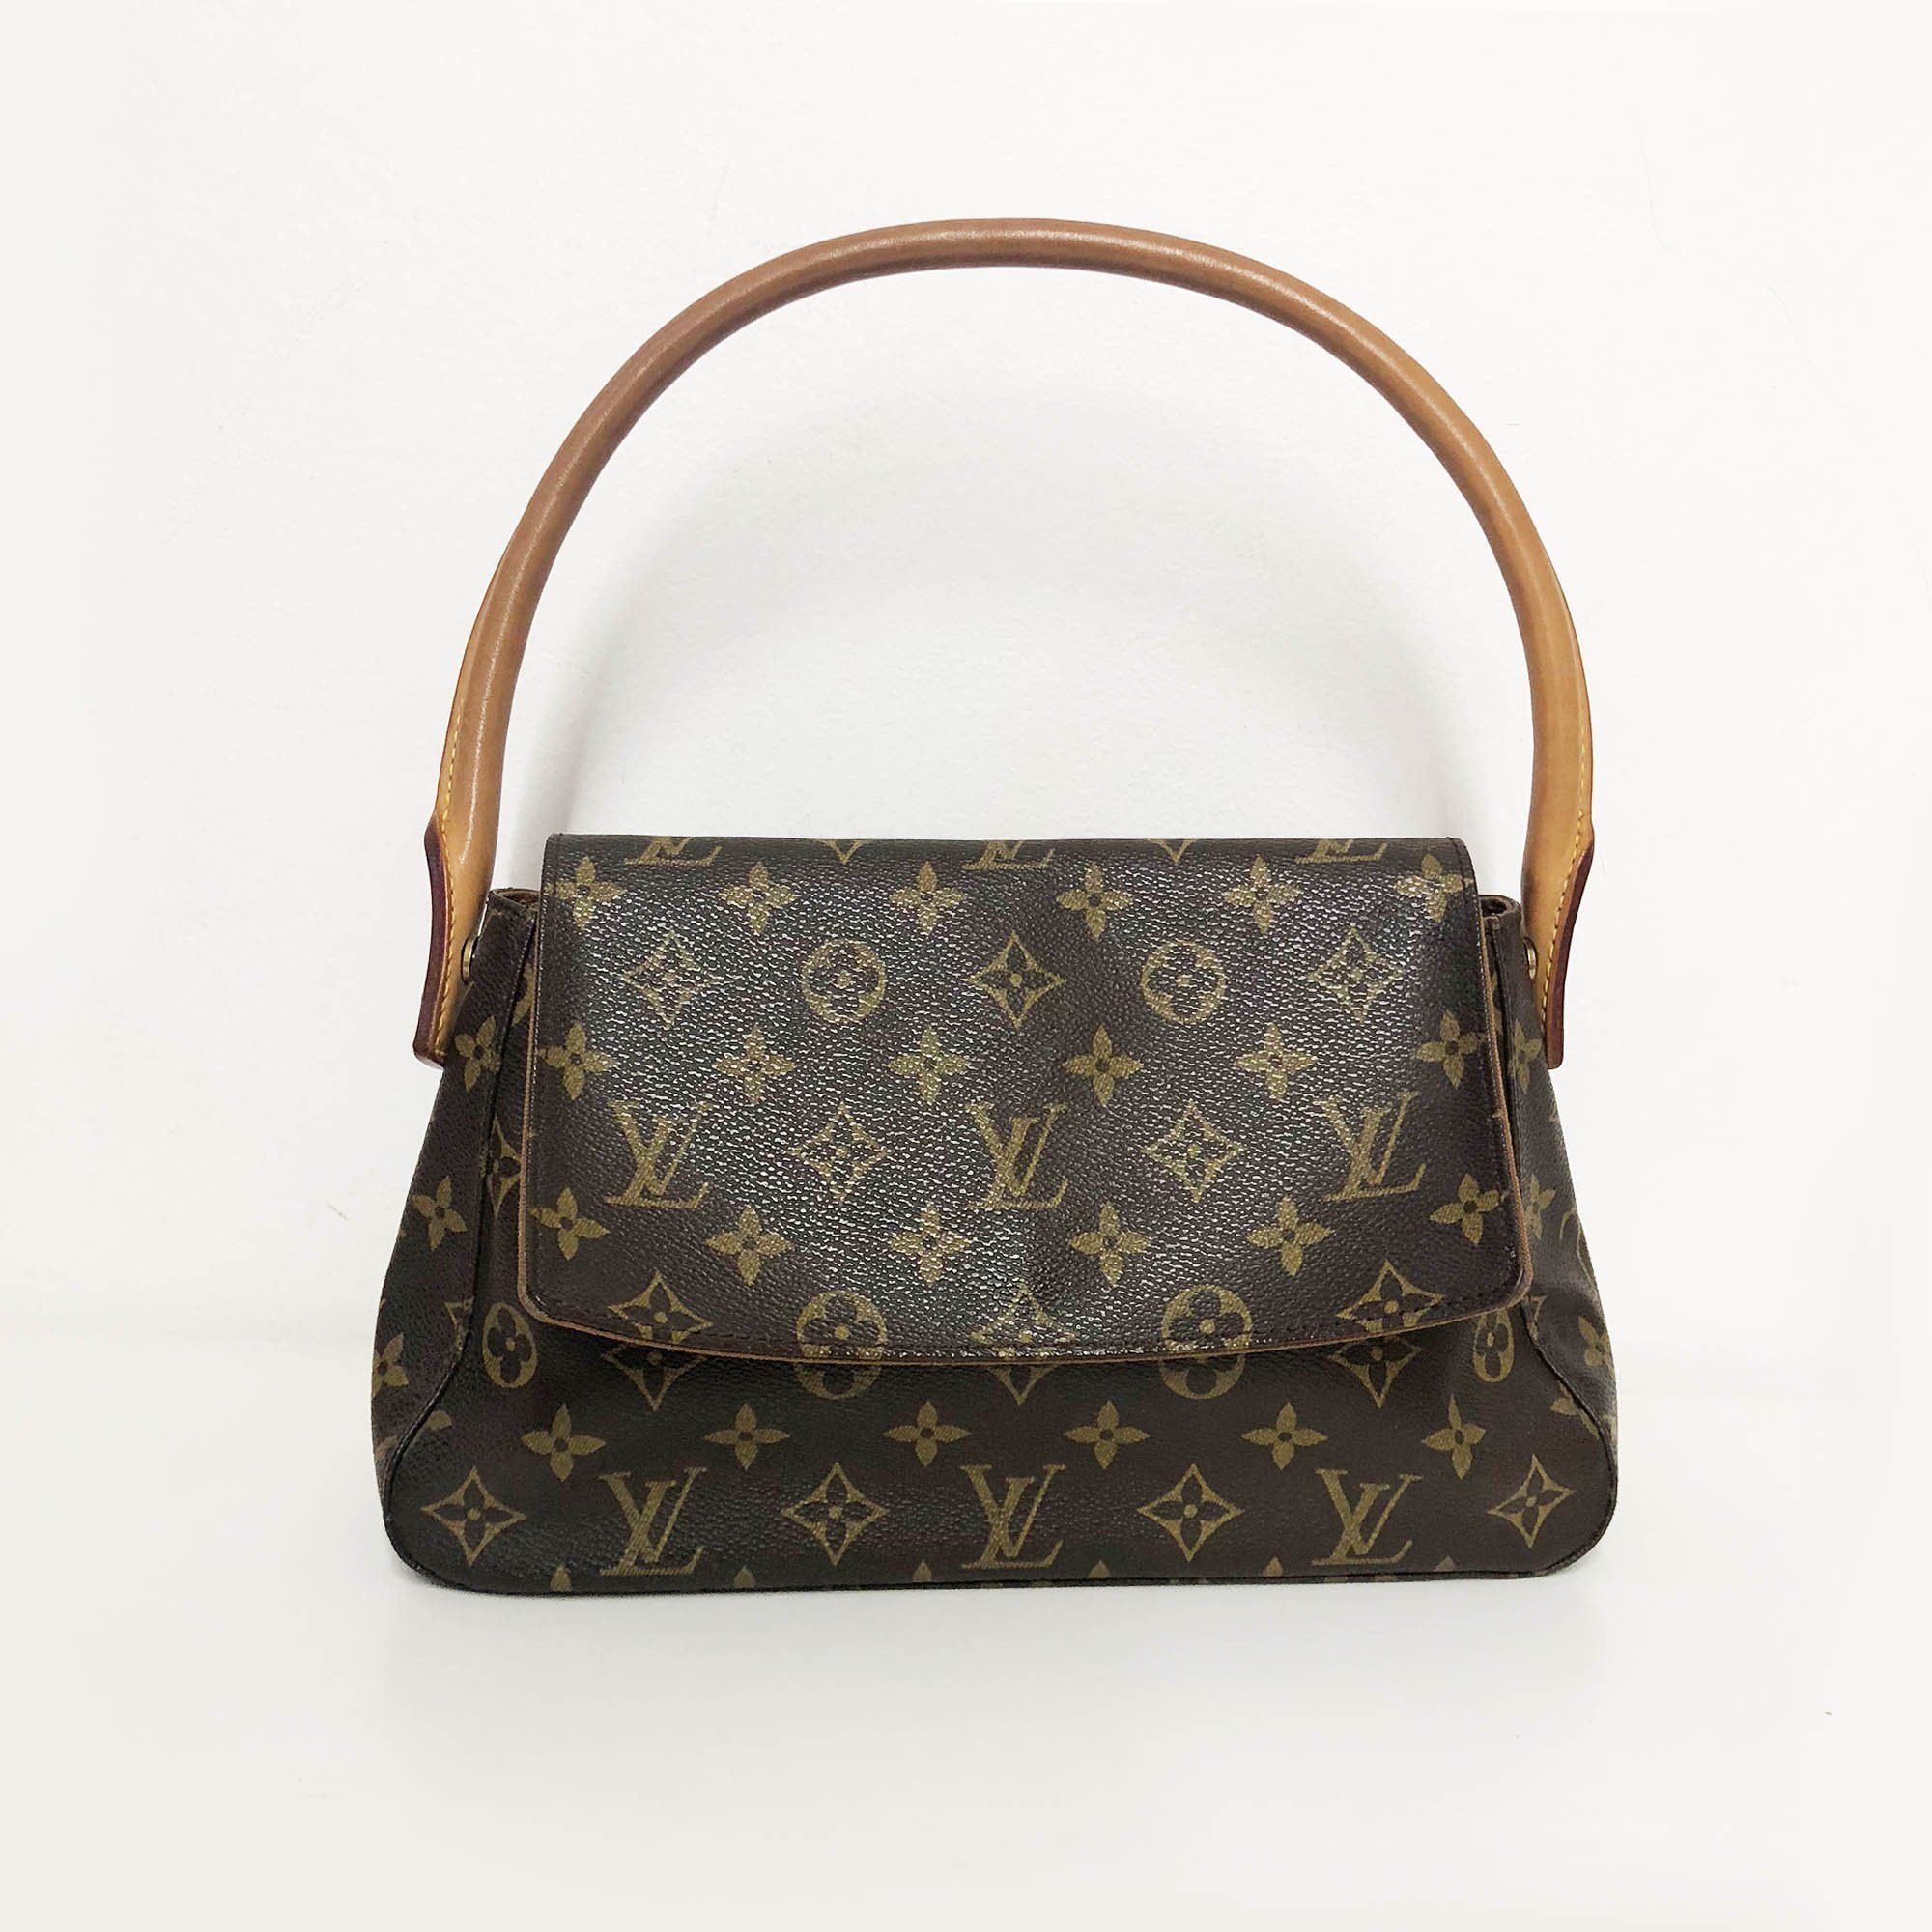 Louis Vuitton Monogram Looping Shoulder Bag